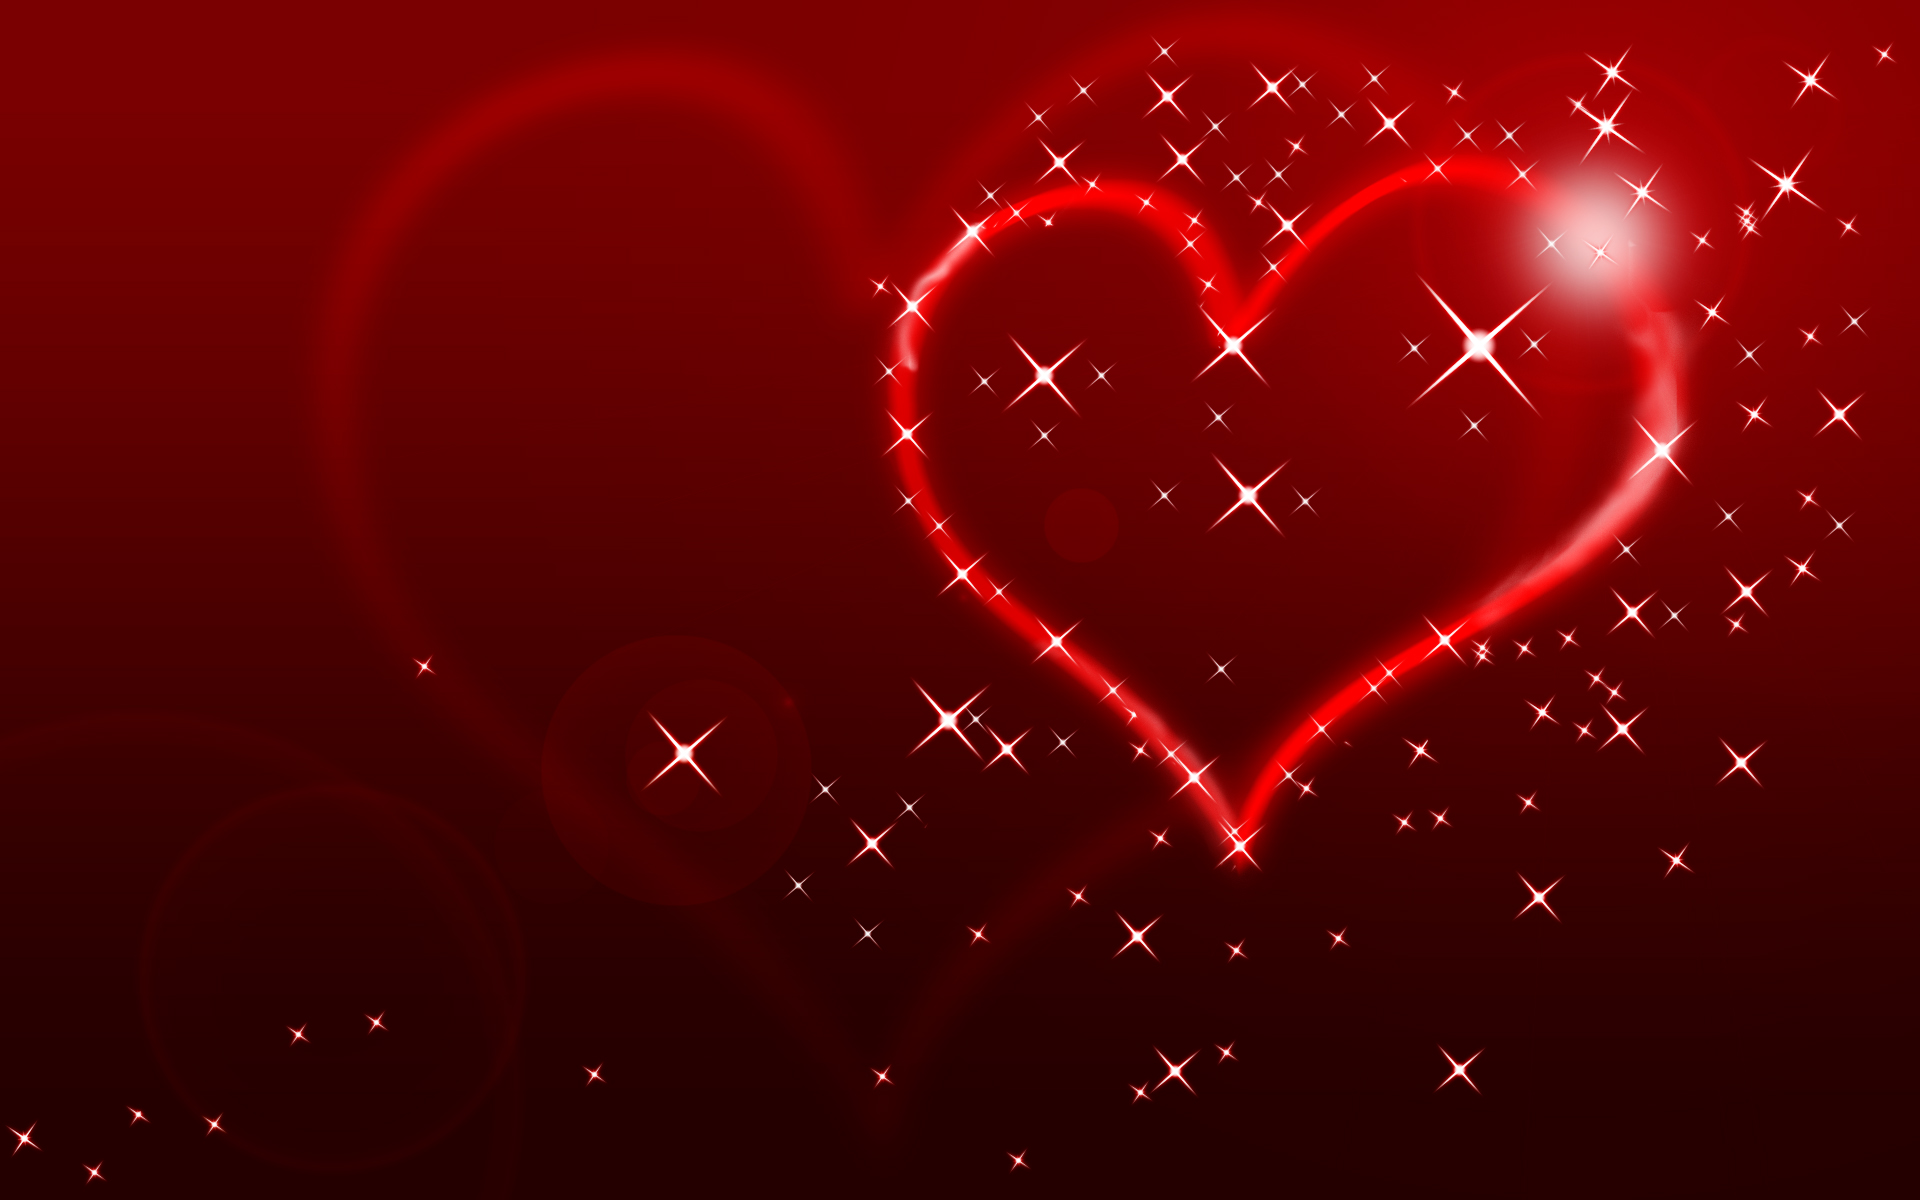 heart valentines day stars wallpaper free hd